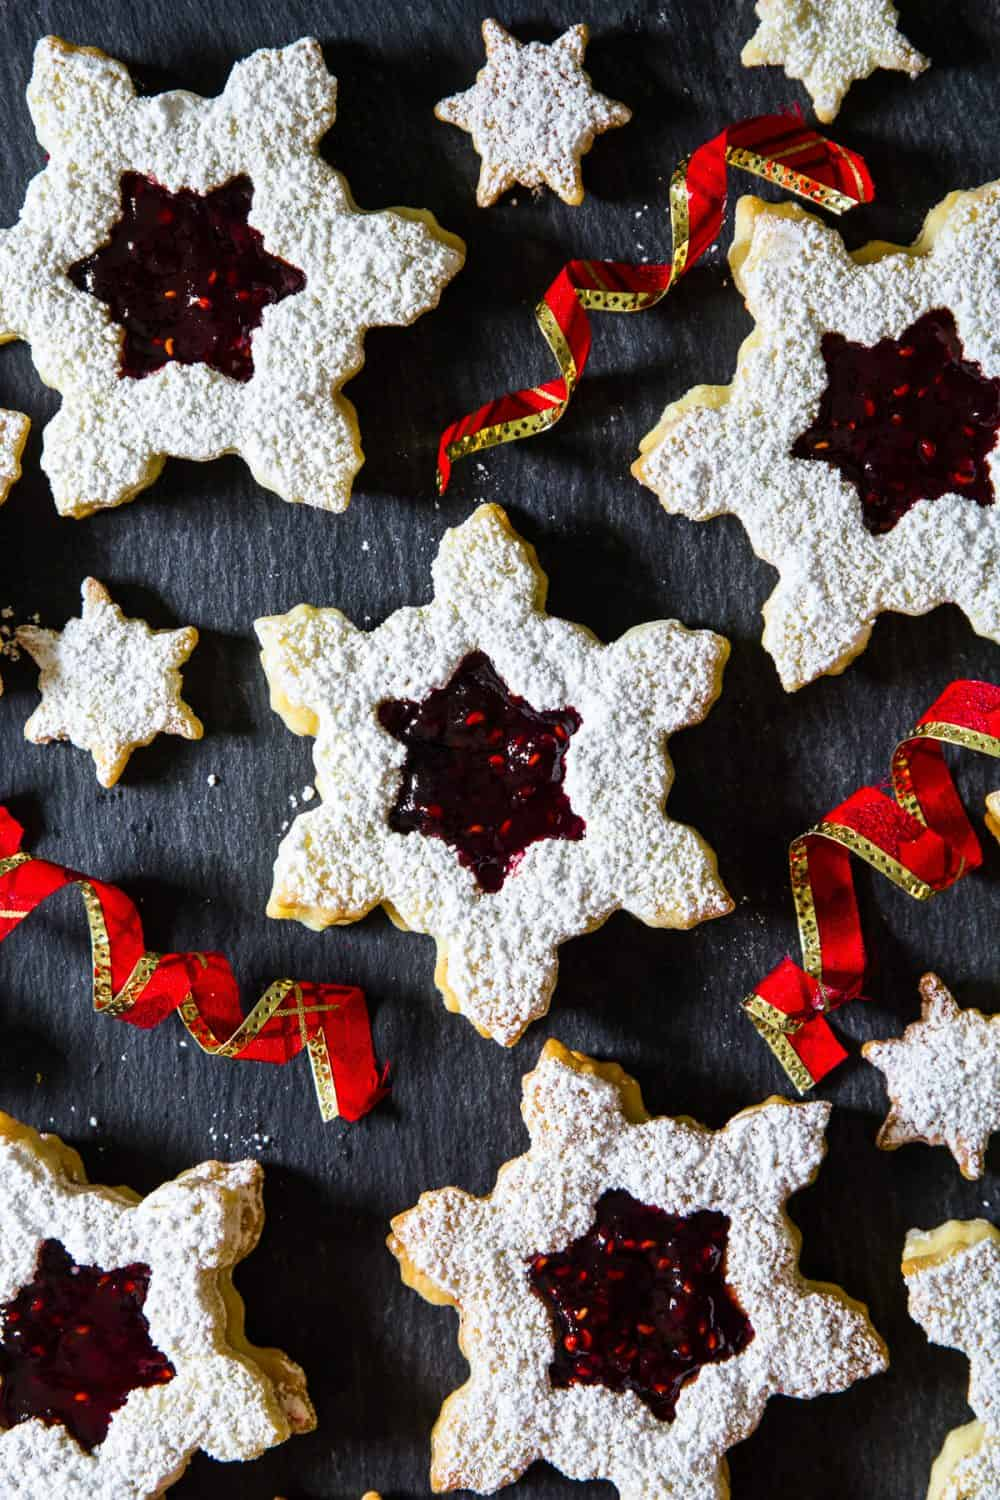 Raspberry jam linzer cookies shaped like snowflakes and dusted in powdered sugar, 3 large and 3 small, along with 3 curling red Christmas ribbons